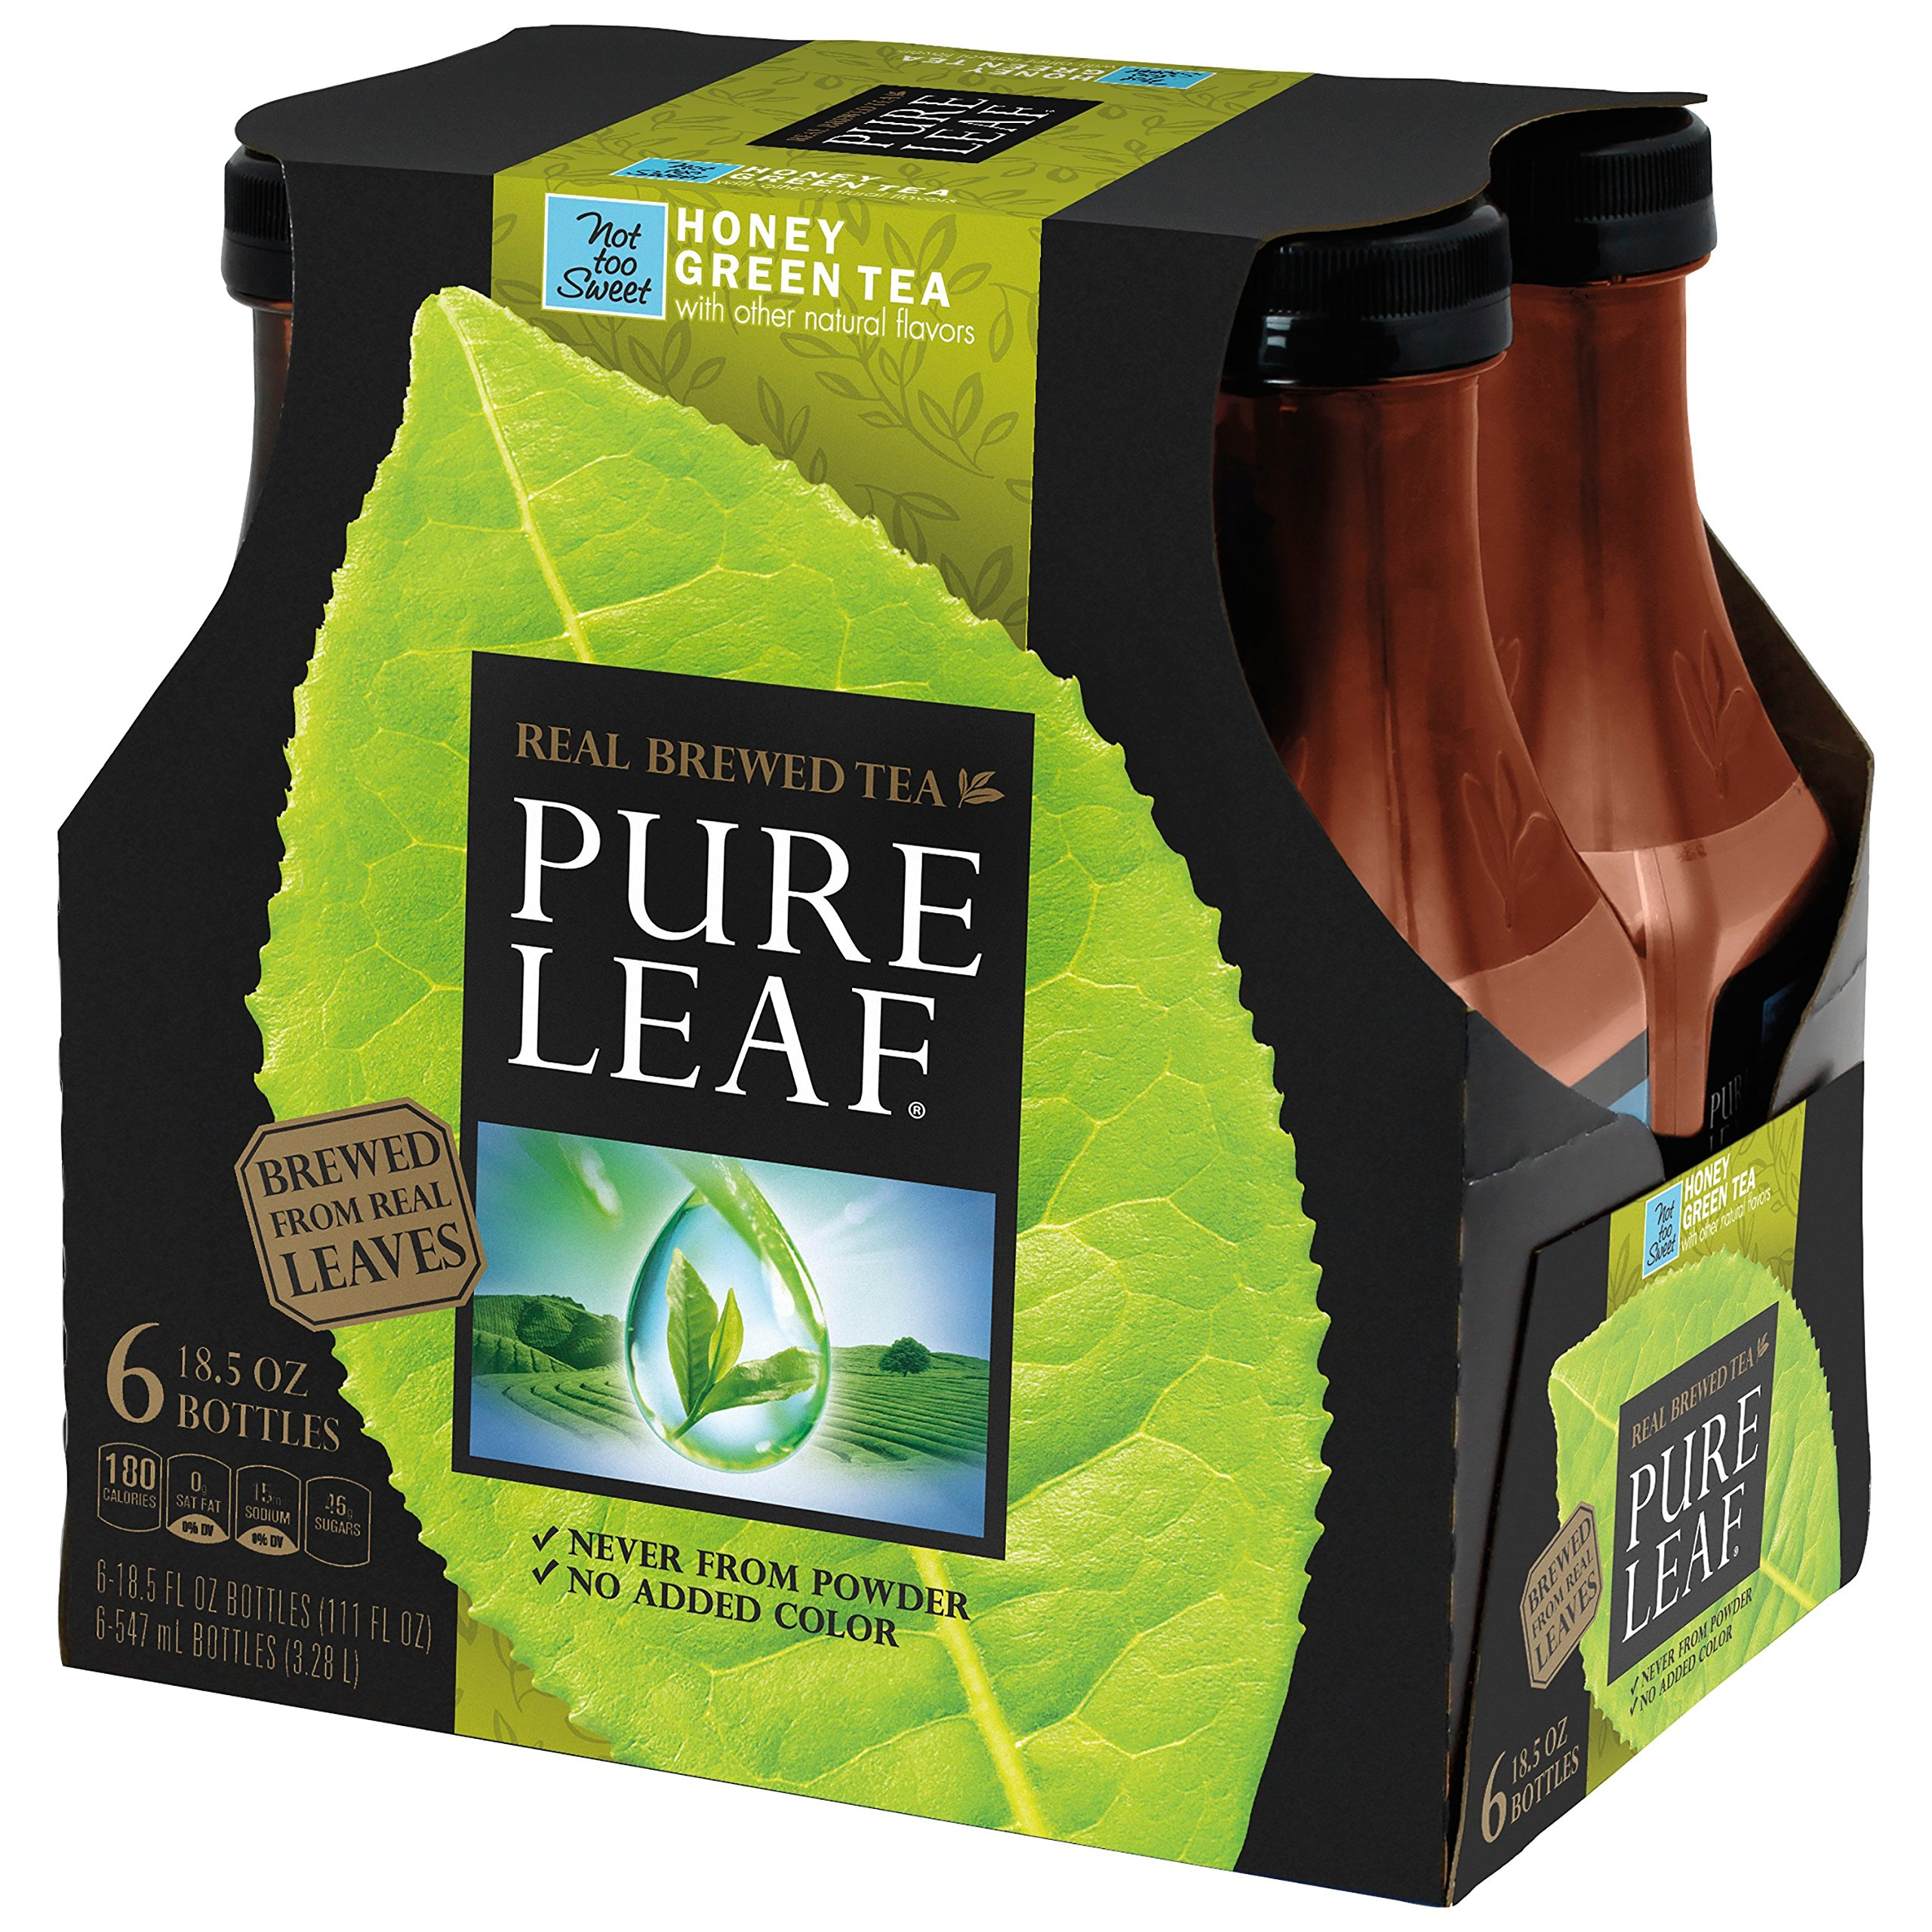 Pure Leaf Iced Tea, Not too Sweet Green Tea with Honey, Real Brewed Tea, 0 Calories, 18.5 Ounce Bottles (Pack of 6)